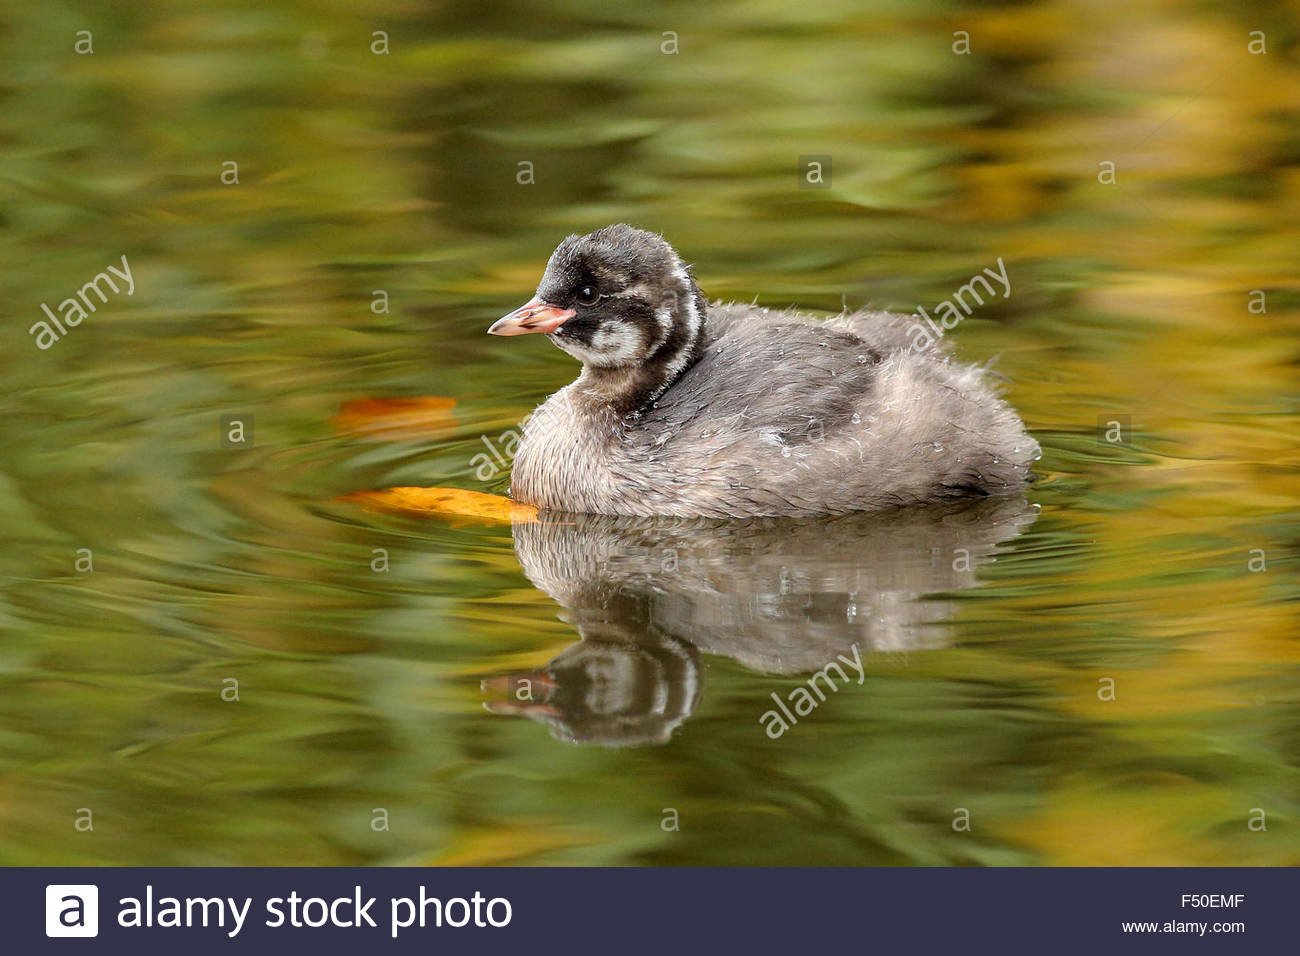 A Juvenile Little Grebe reflecting on a pond. - Stock Image